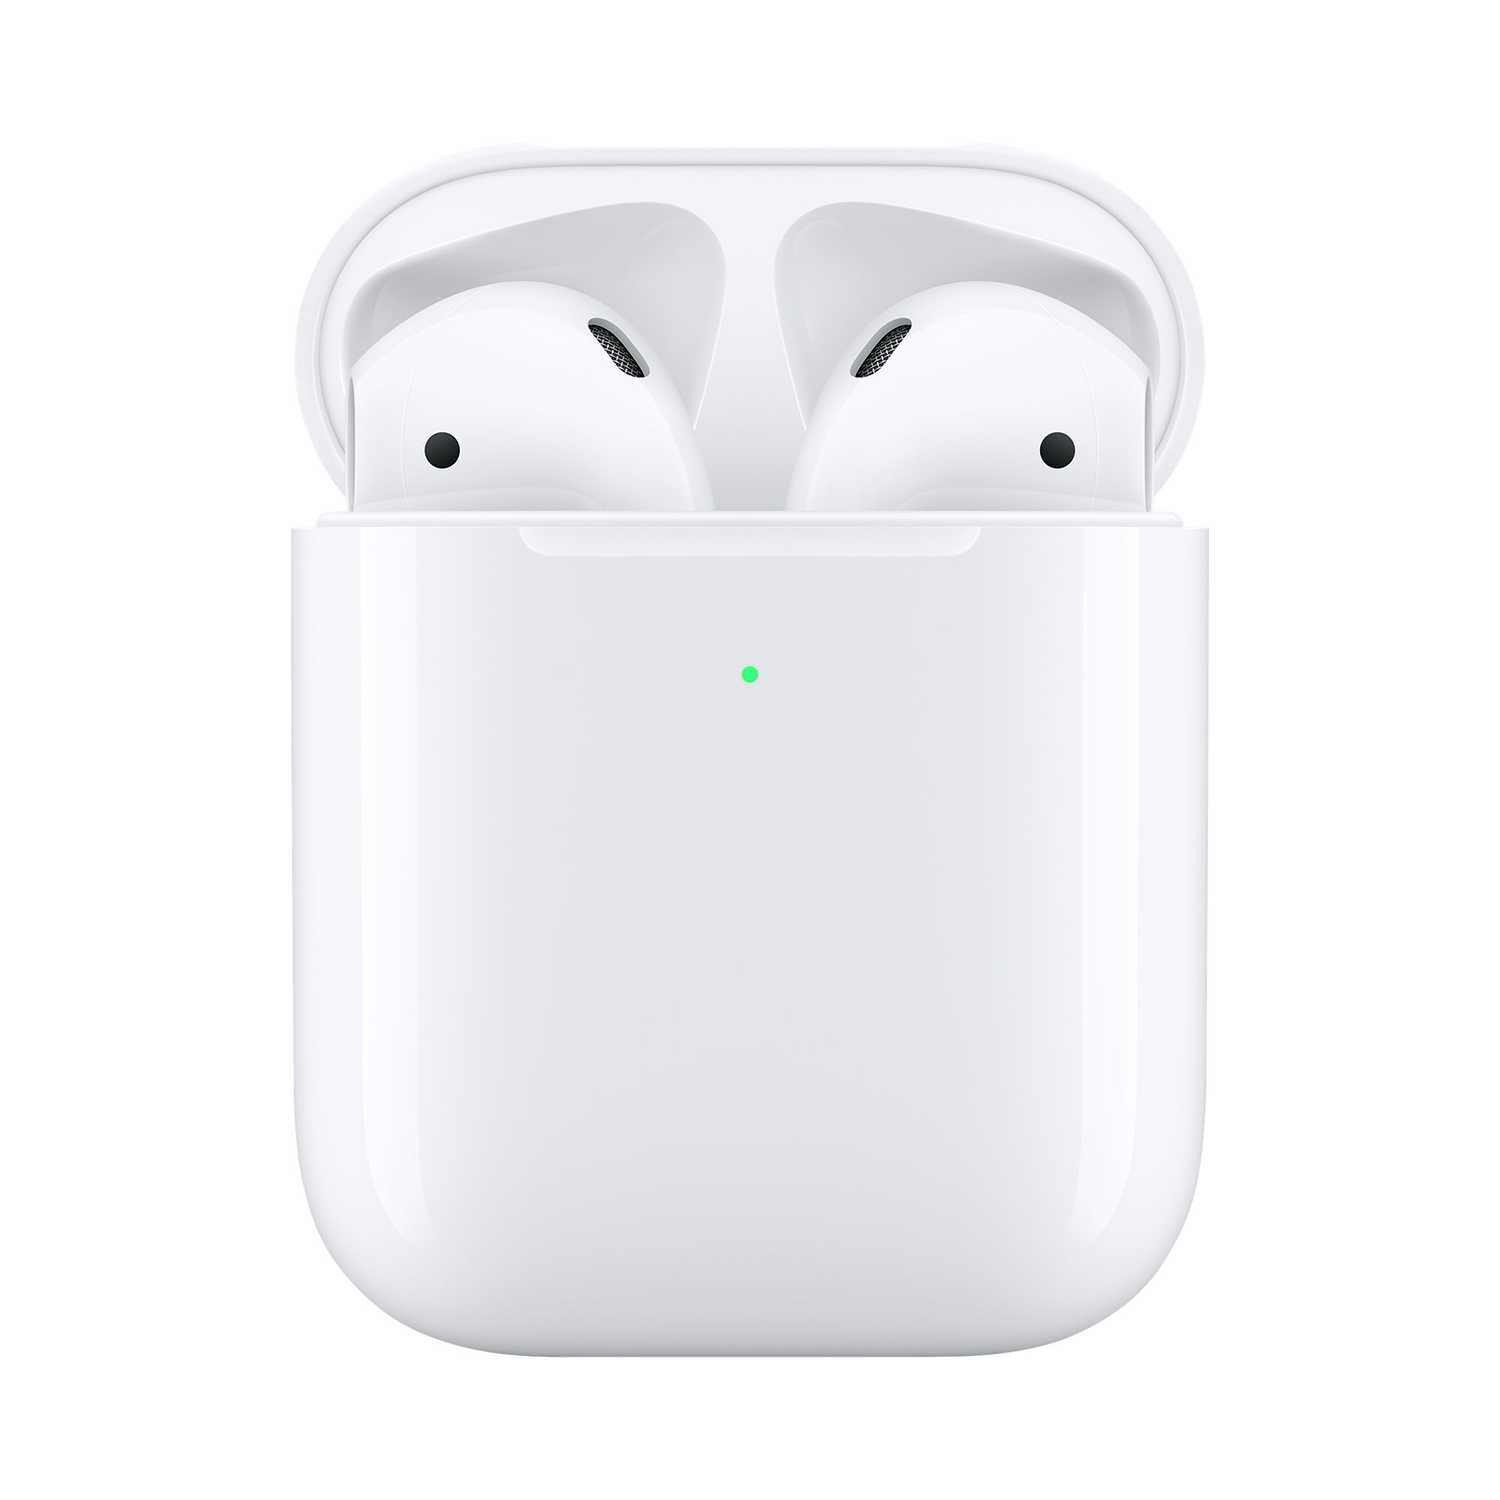 Desktops Apple AirPods With Wireless Charging Case Ref MRXJ2ZM/A